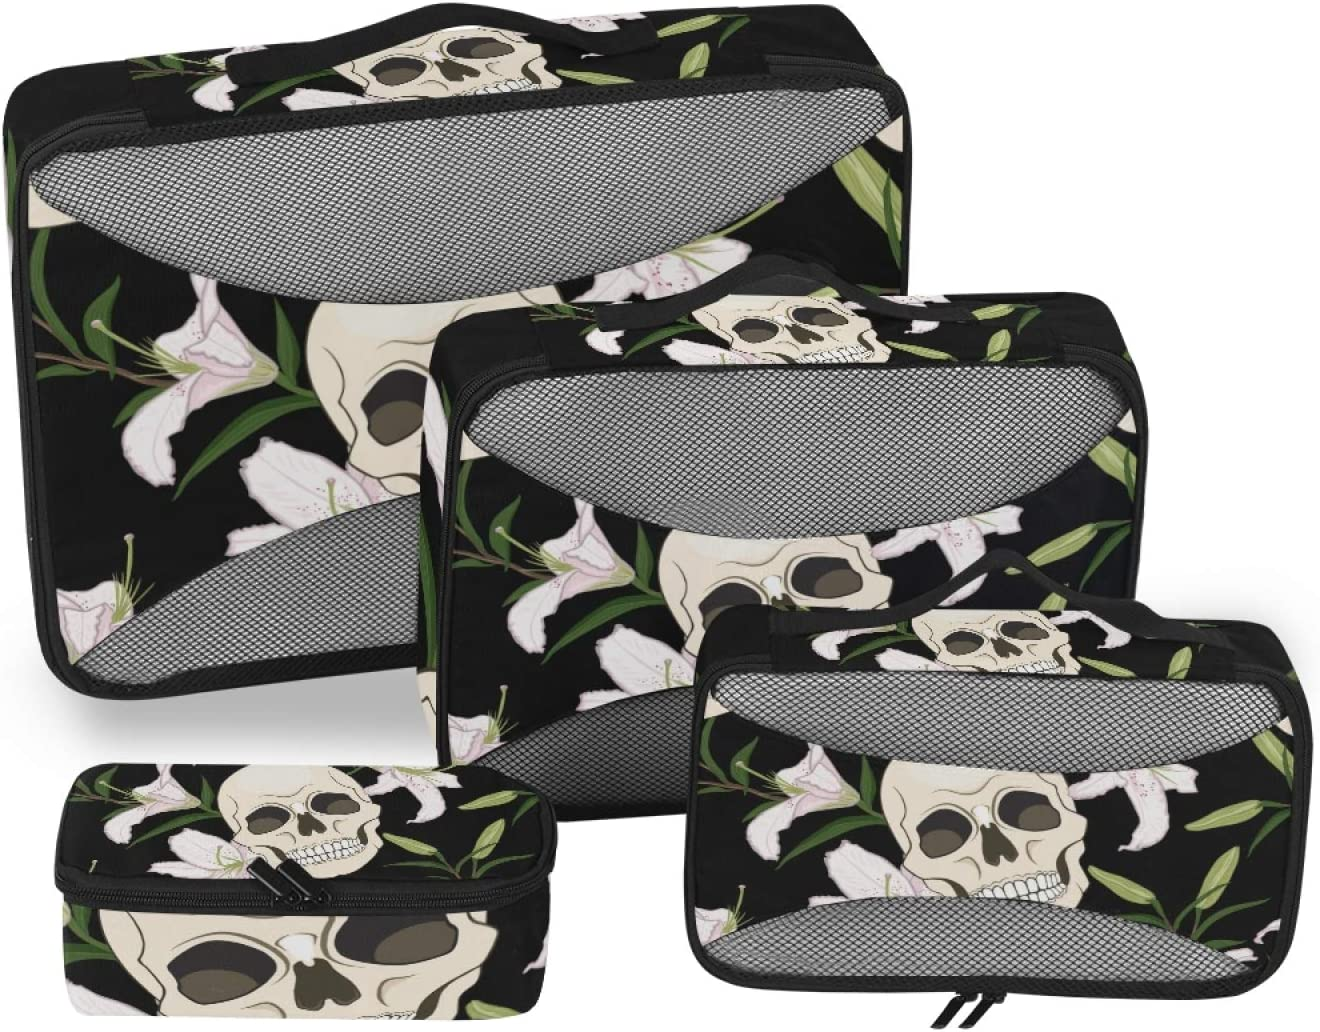 Skull White Lily Packing Cubes Organizer 4 years warranty Travel 4-Pcs Very popular Accessorie